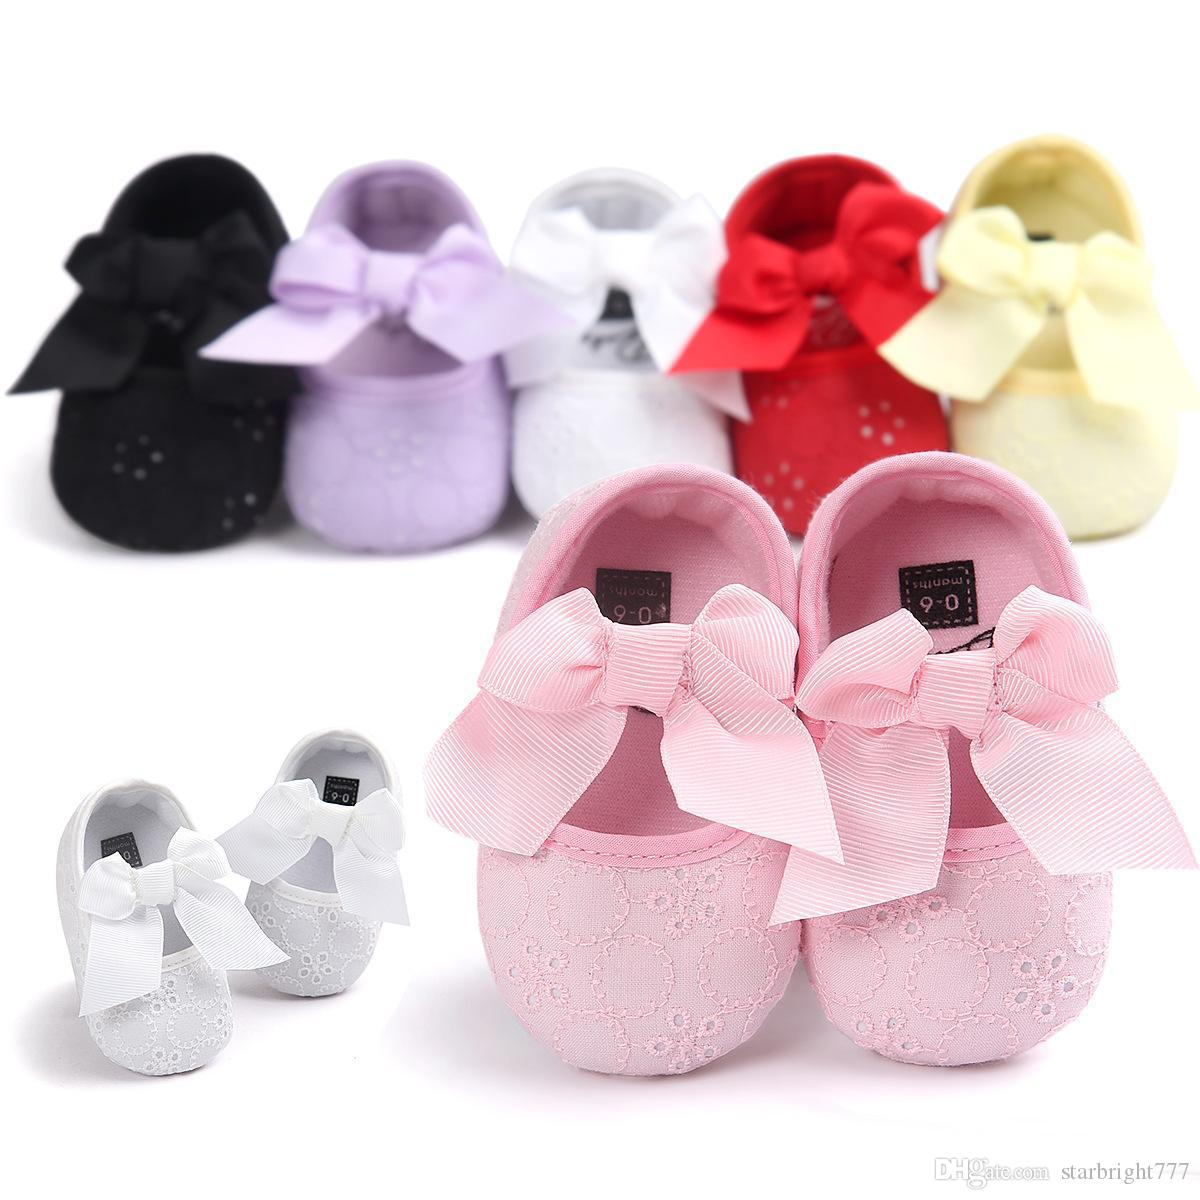 shop for official exceptional range of styles and colors 2019 clearance sale 2019 Newborn Shoes Infant Baby Girls Shoes Cotton Lace Bows Princess Party  Shoes Birthday Soft Sweet 0 1 Year Maternity 2017 Spring New From ...